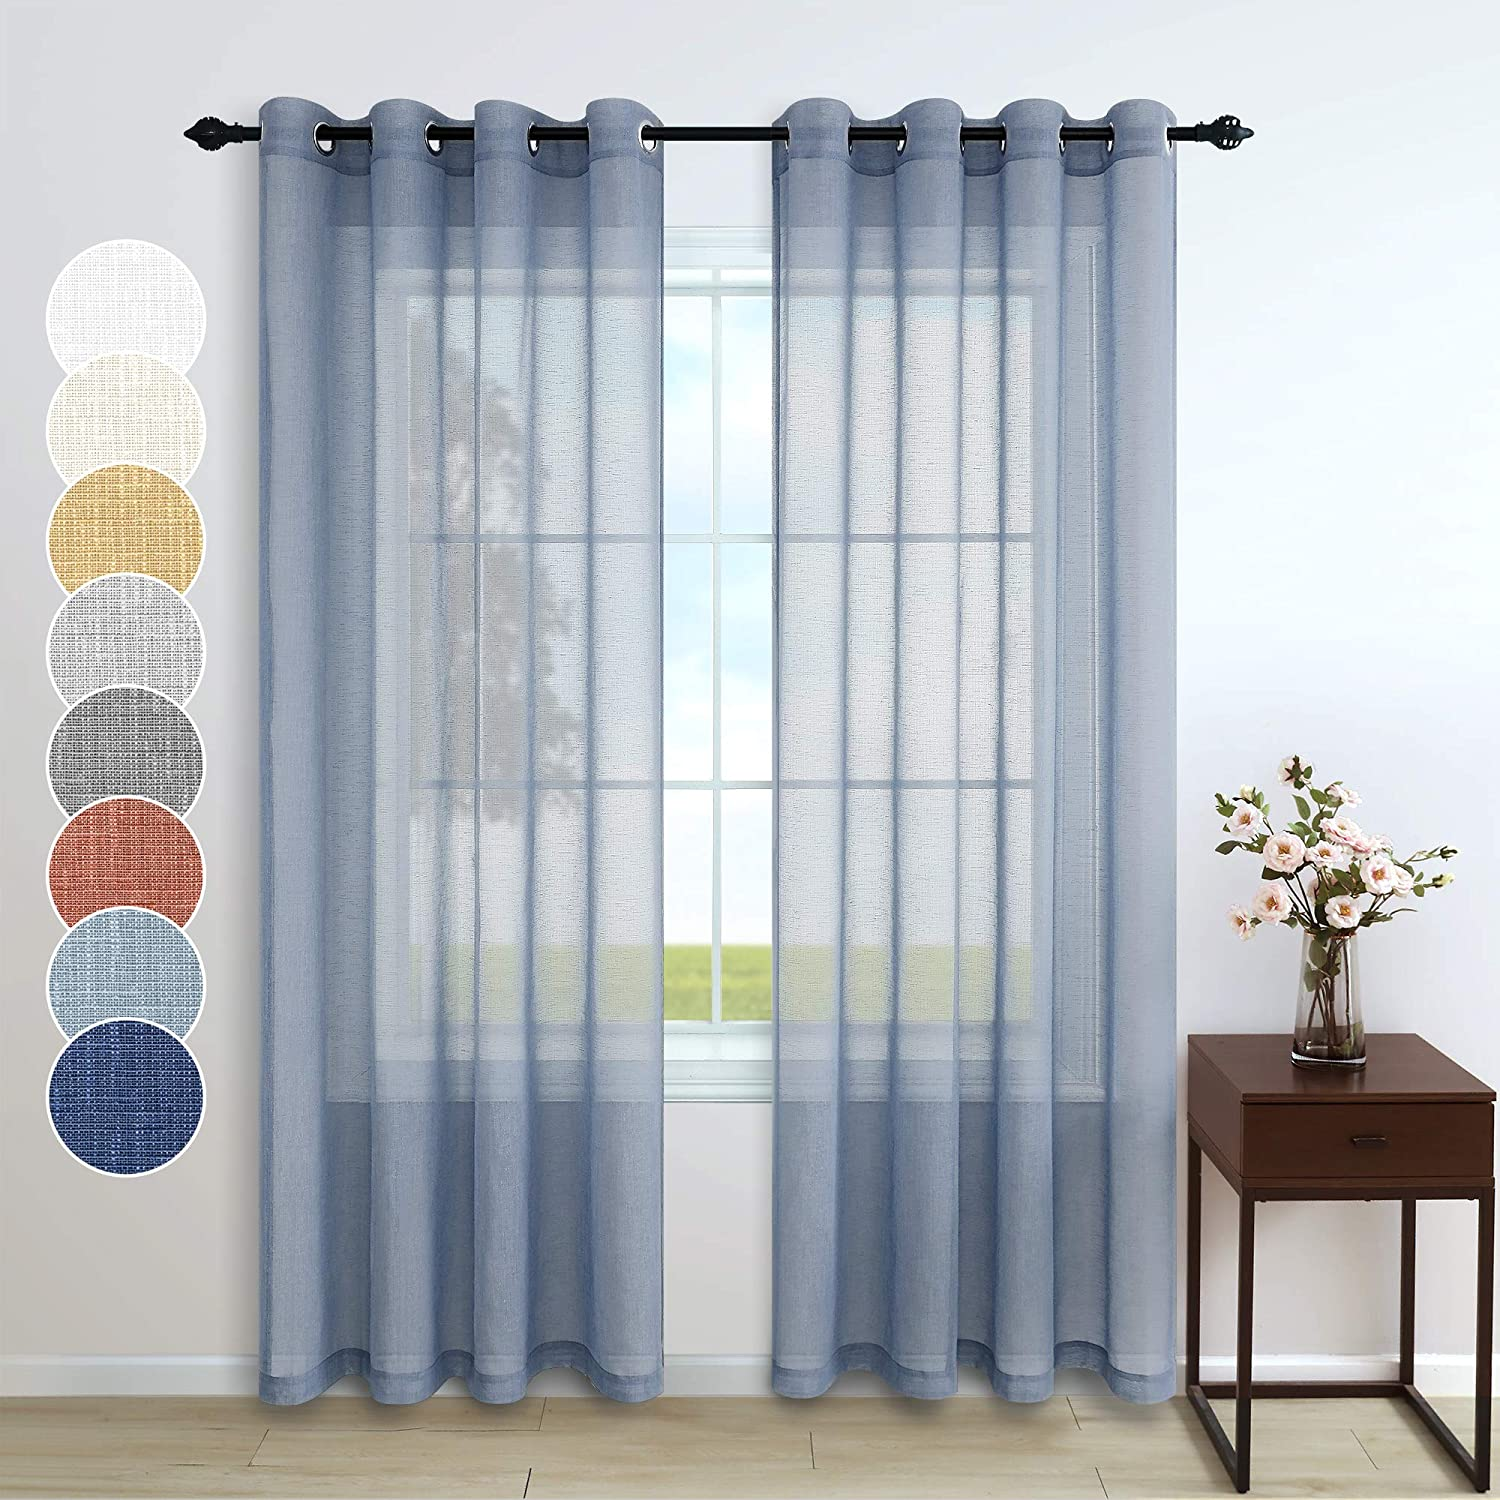 Pitalk Dusty Blue Curtains 84 Inch Length for Living Room Decor 2 Panels Grommet Linen Look Translucent Country Blue Semi Sheer Curtains for Bedroom Dining Bay Window Accents 52x84 Long Grey Gray Blue